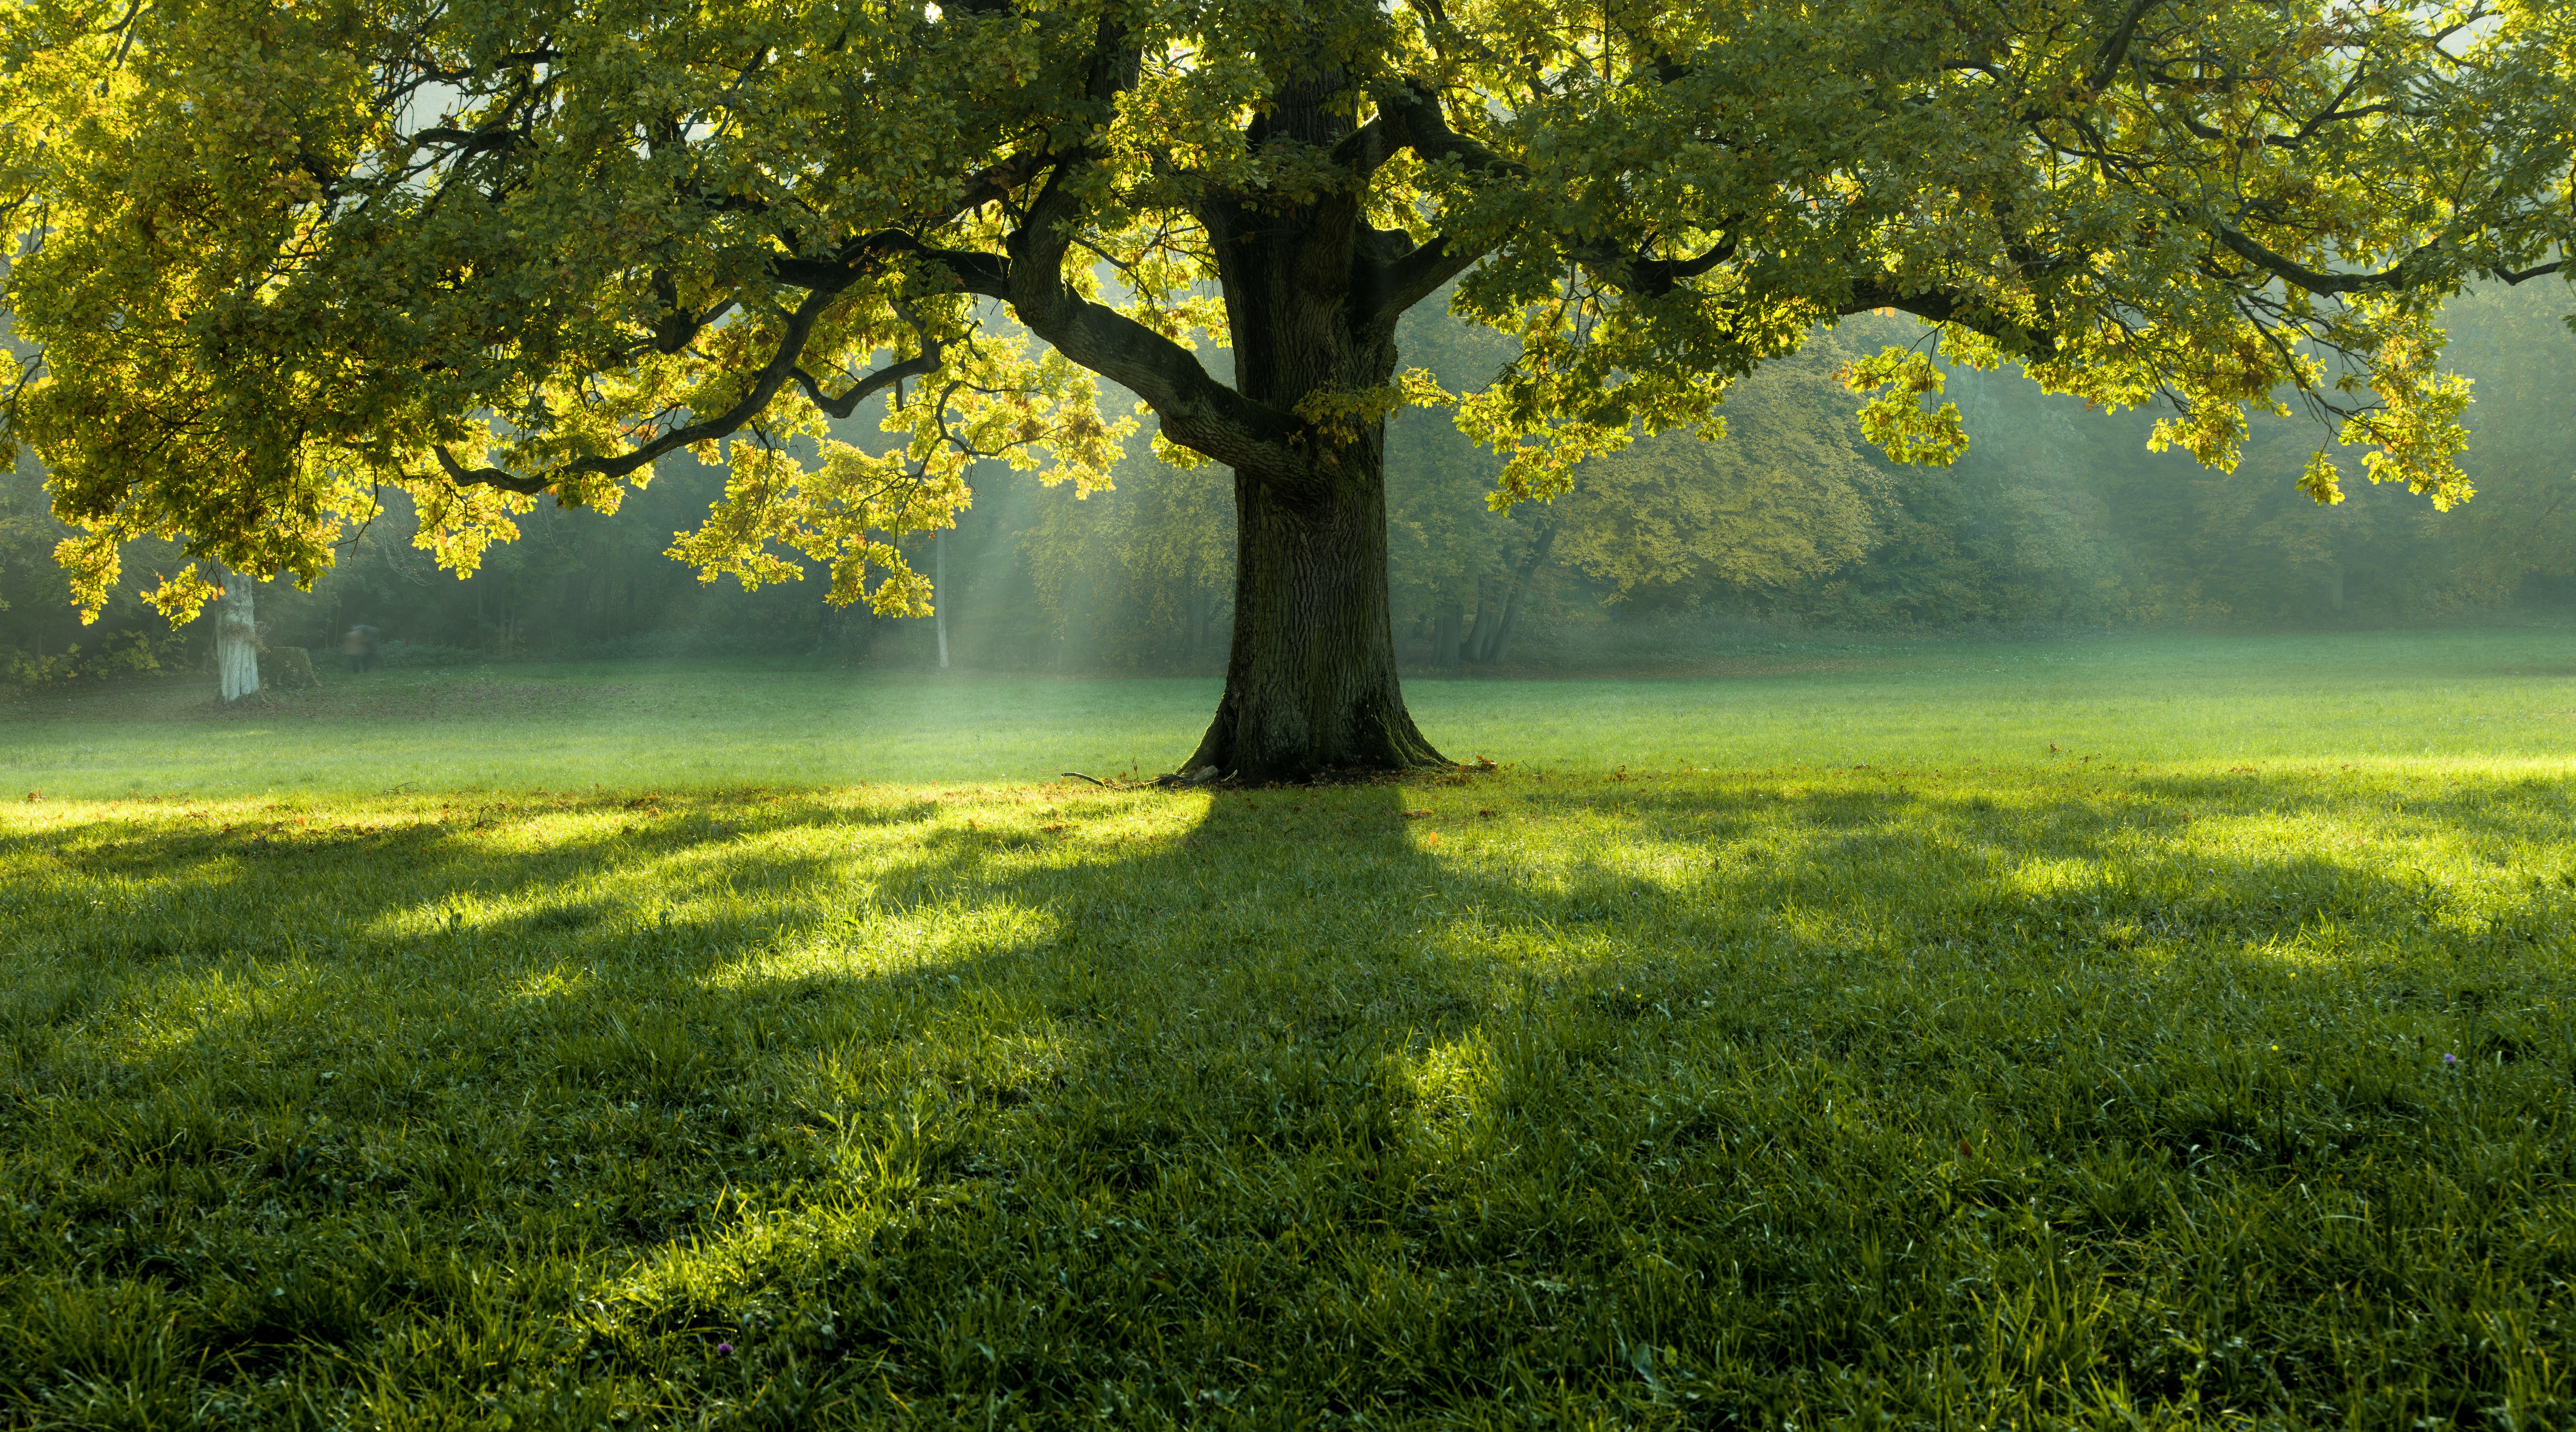 beautiful-tree-middle-field-covered-with-grass-with-tree-line-background